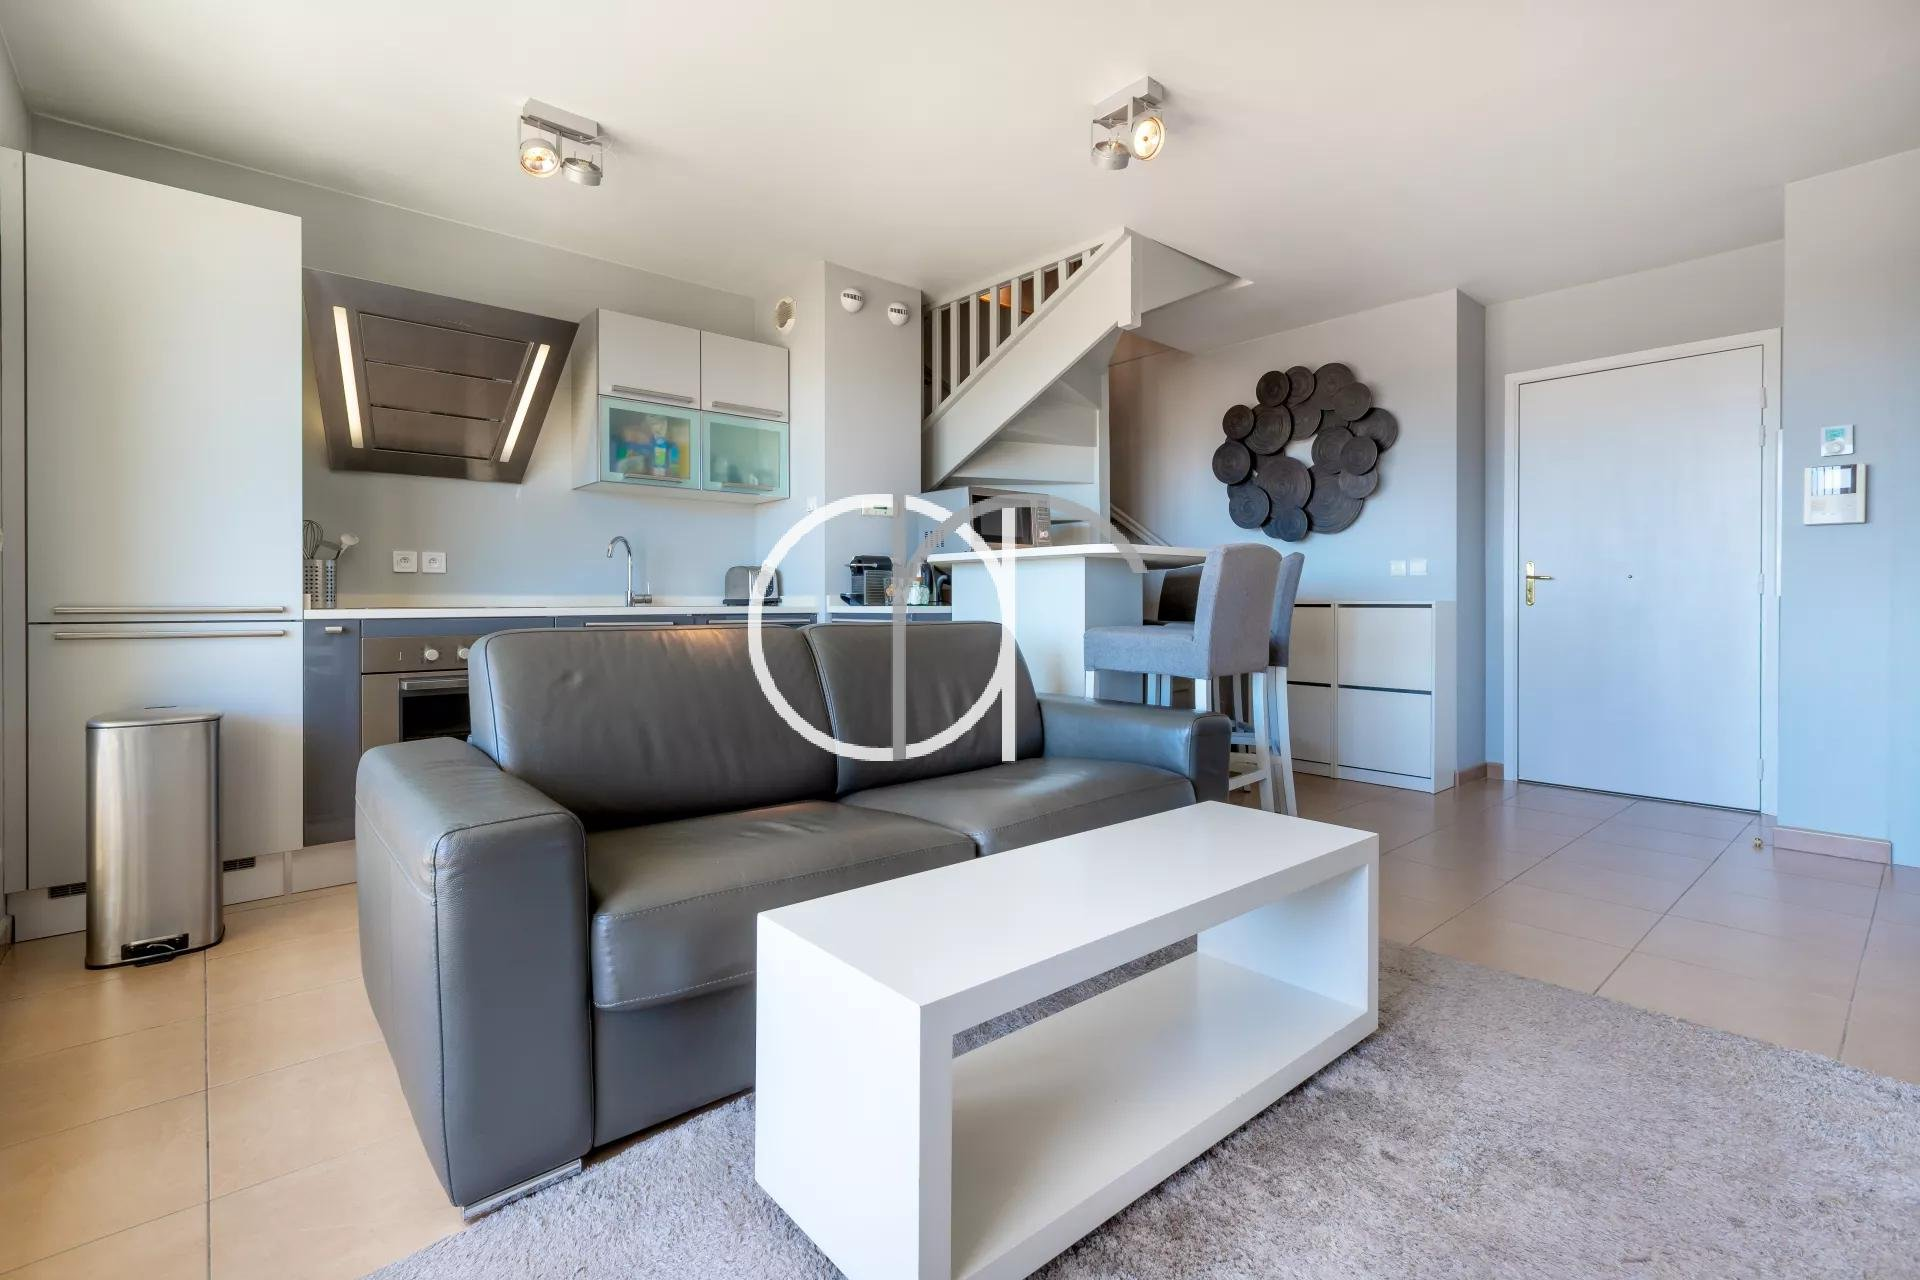 One bedroom apartment - sea view - city center